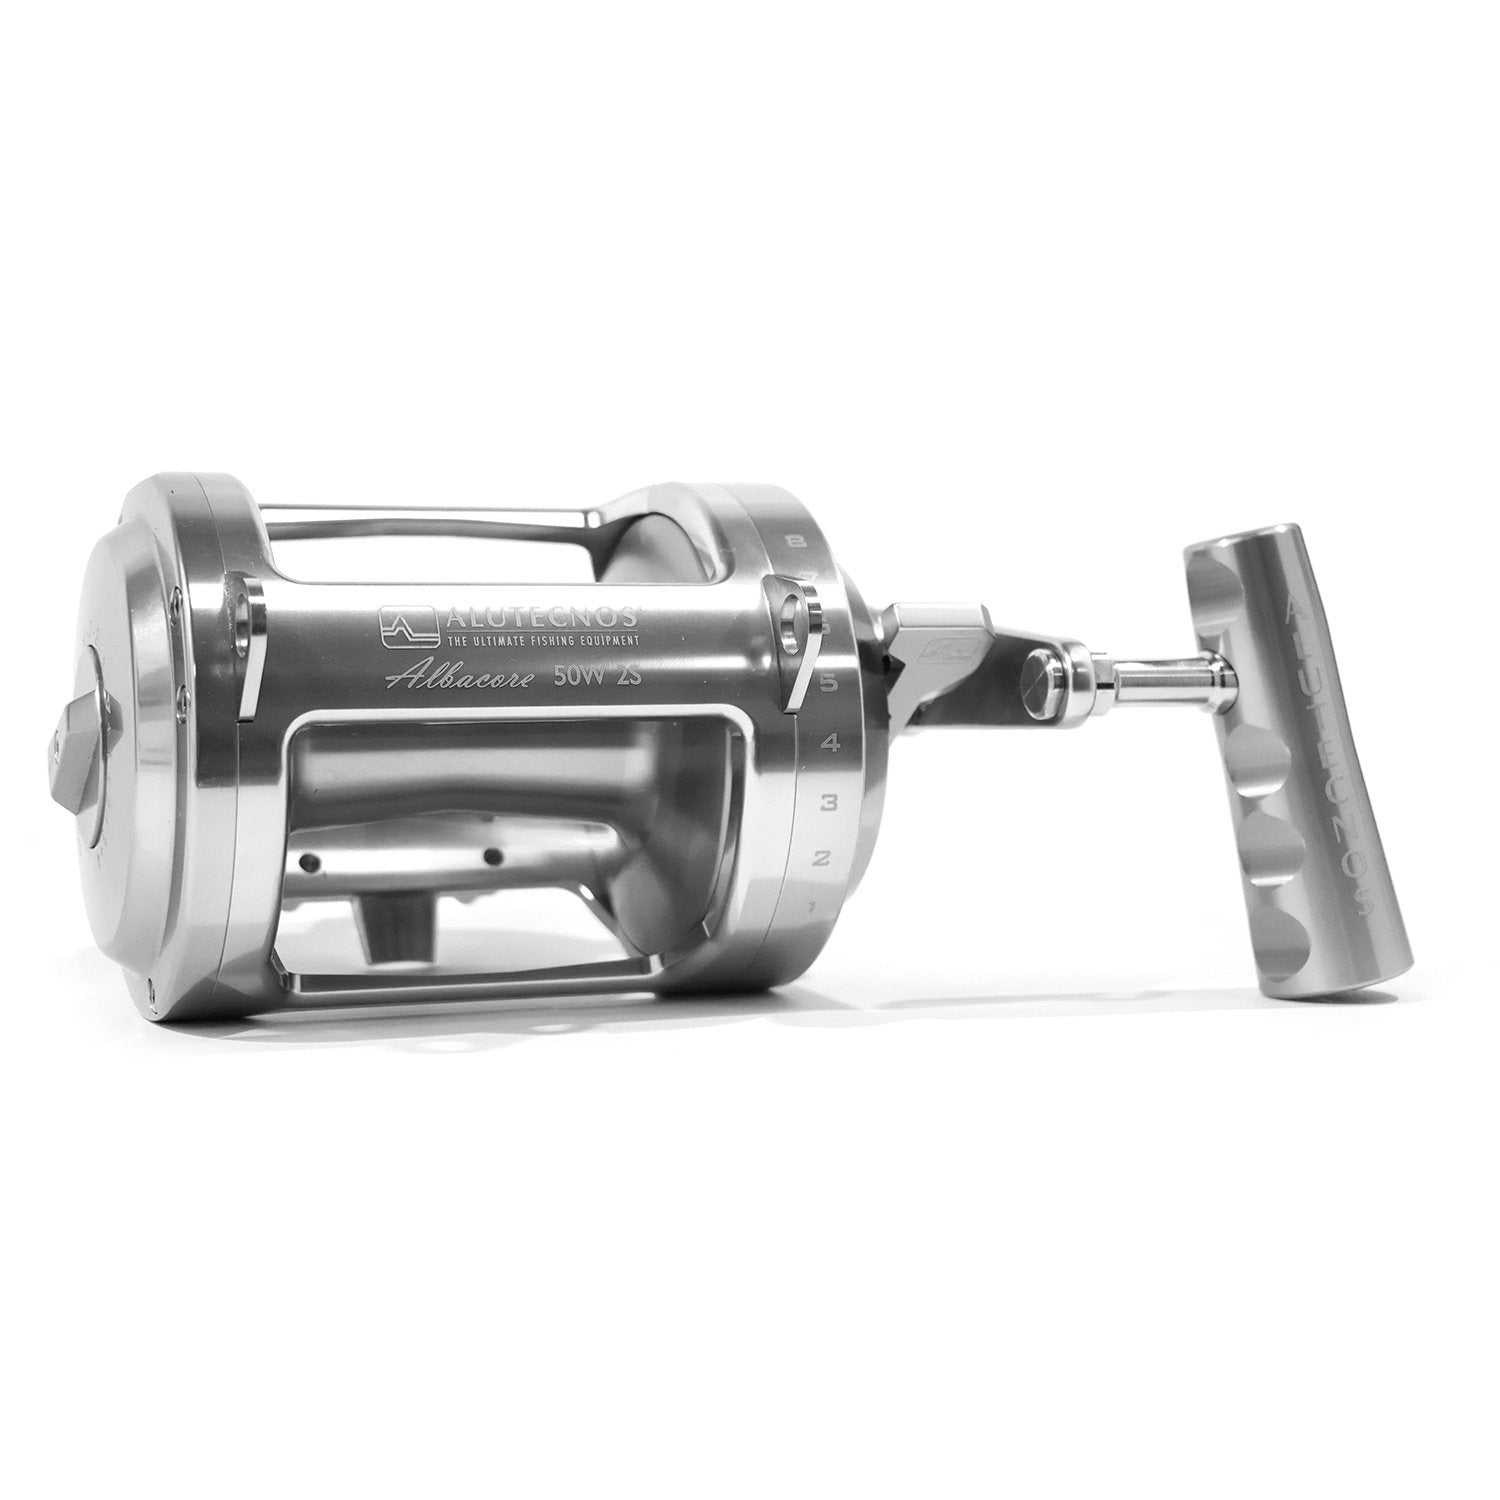 Alutecnos Albacore 50 Wide Two Speed Reel - Silver - Bulluna.com